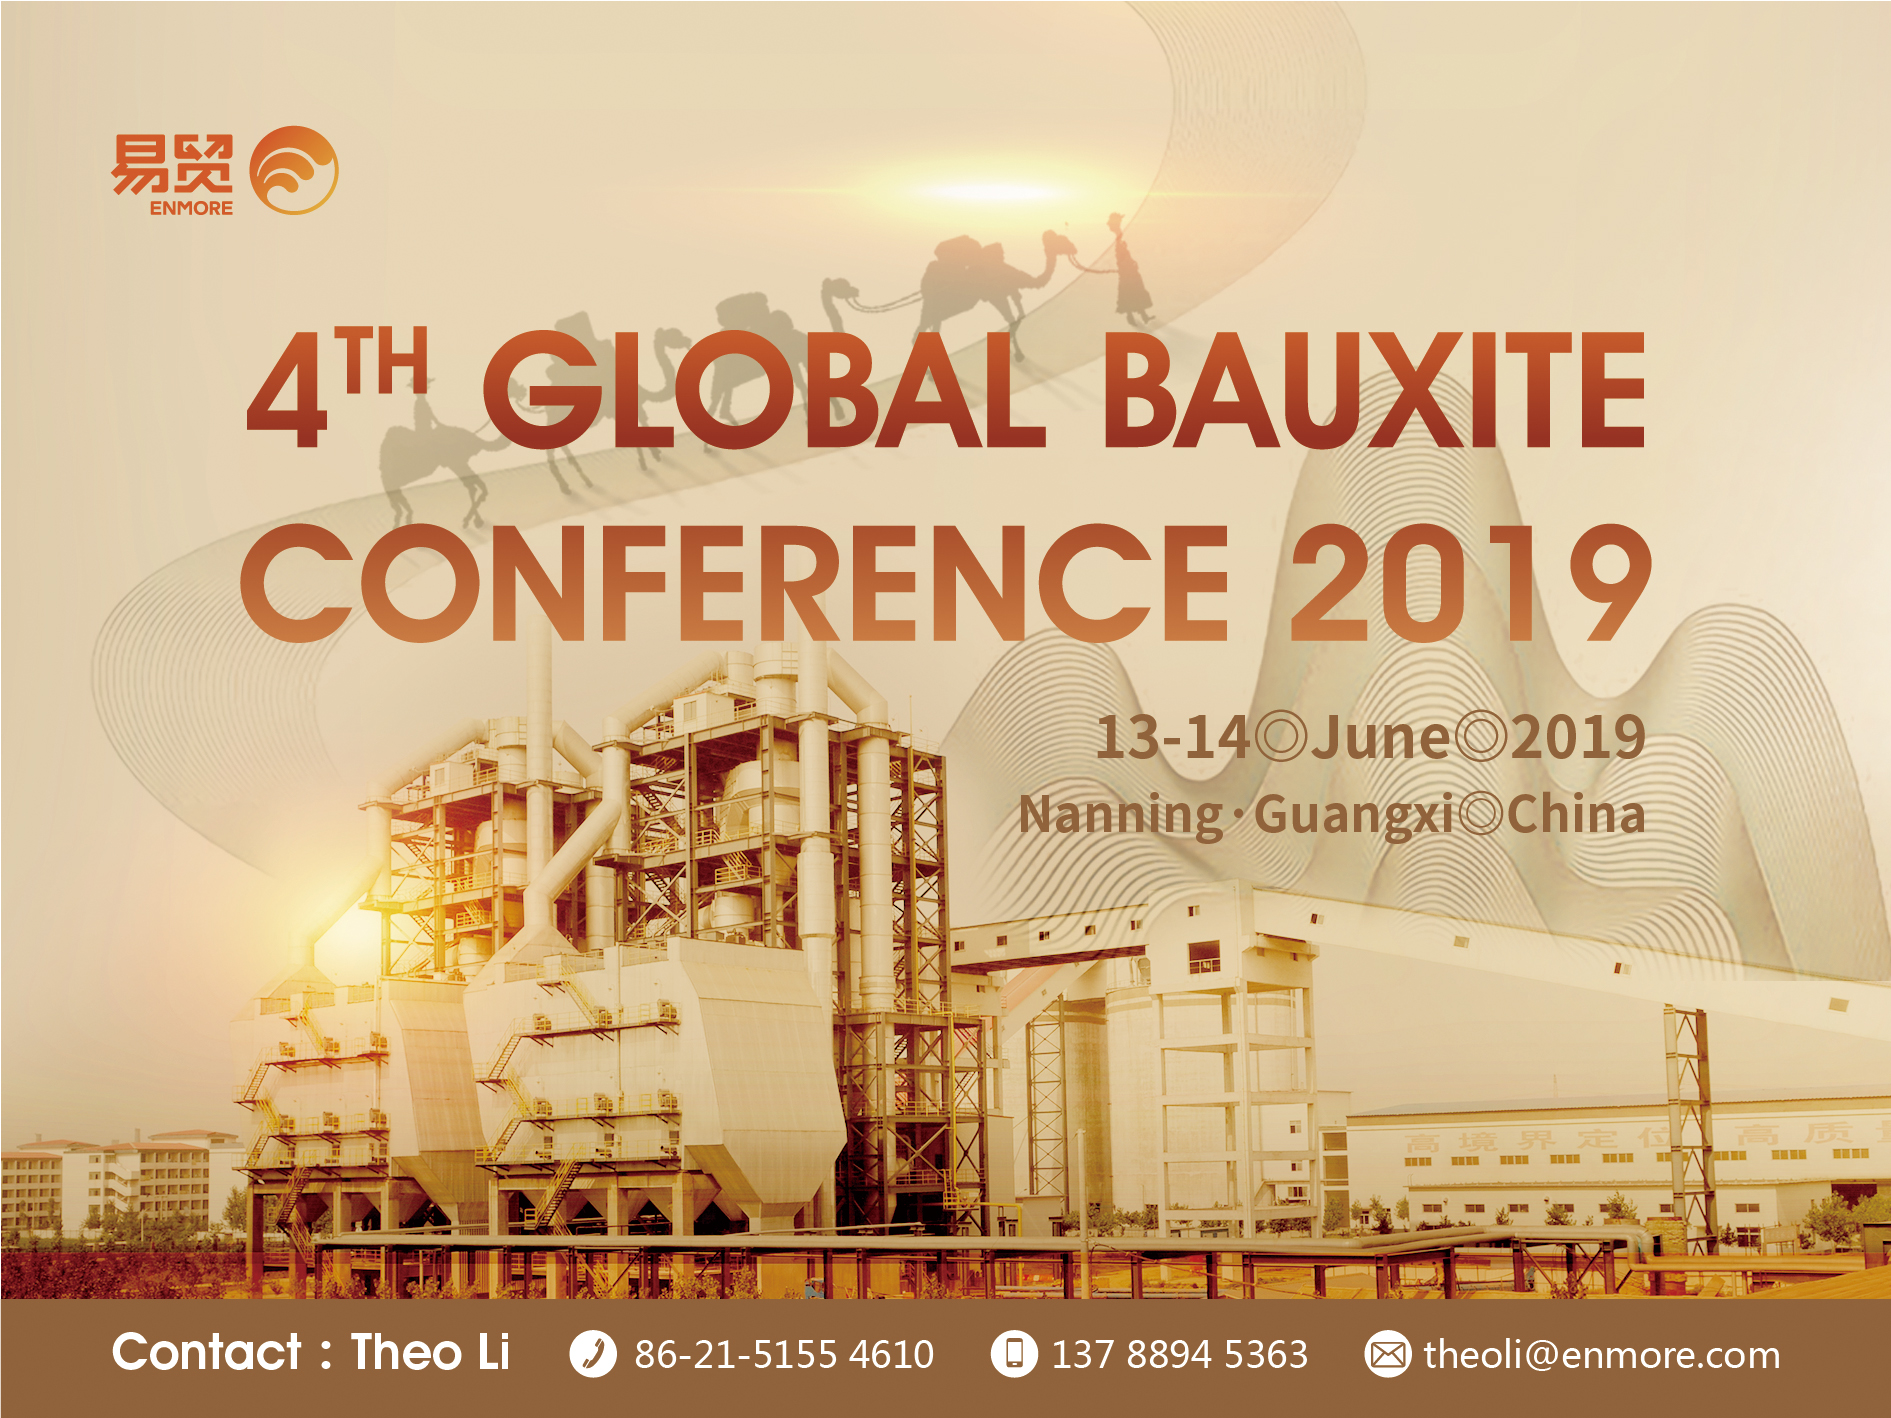 4th Global Bauxite Conference